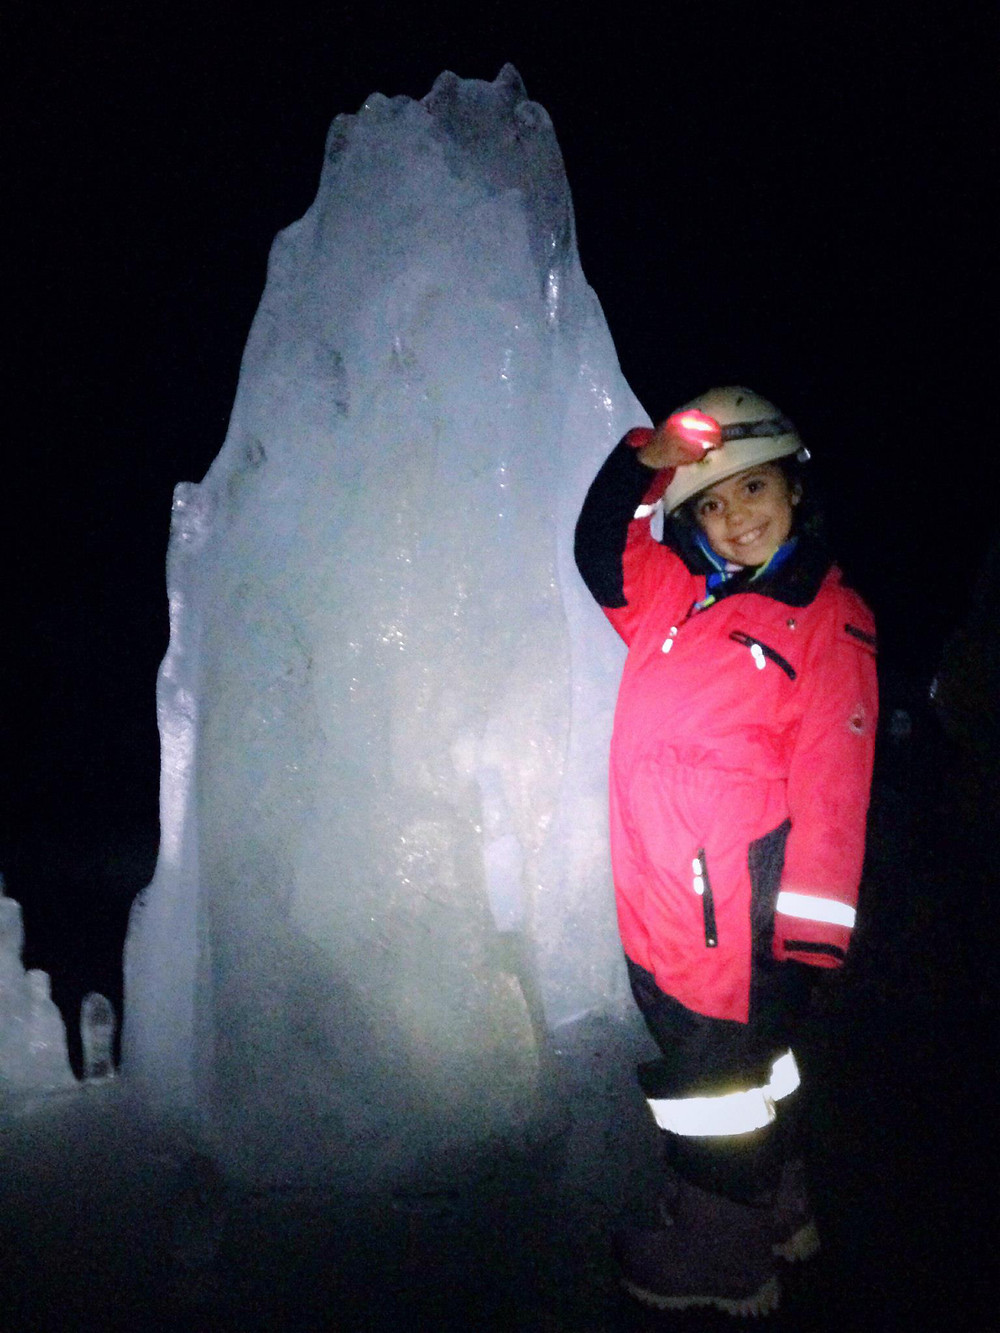 The Lofthellir ice cave tour is suitable for children 8 years and up